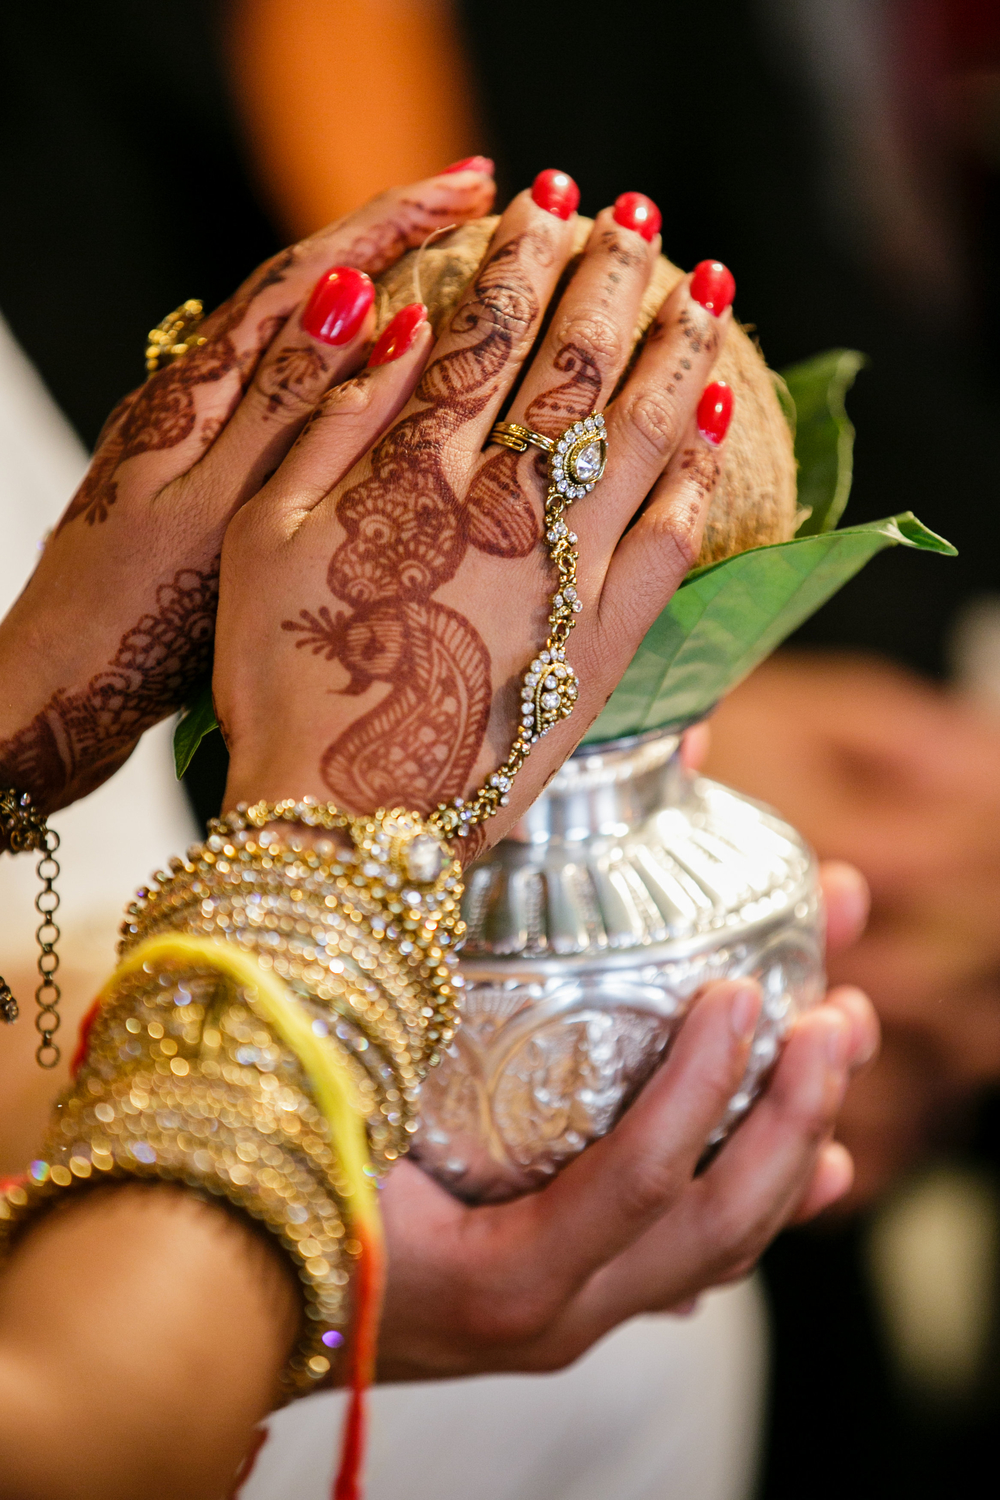 AnaisEvents_JihanCerdaPhotography_Priya-and-Jason - 082.jpg